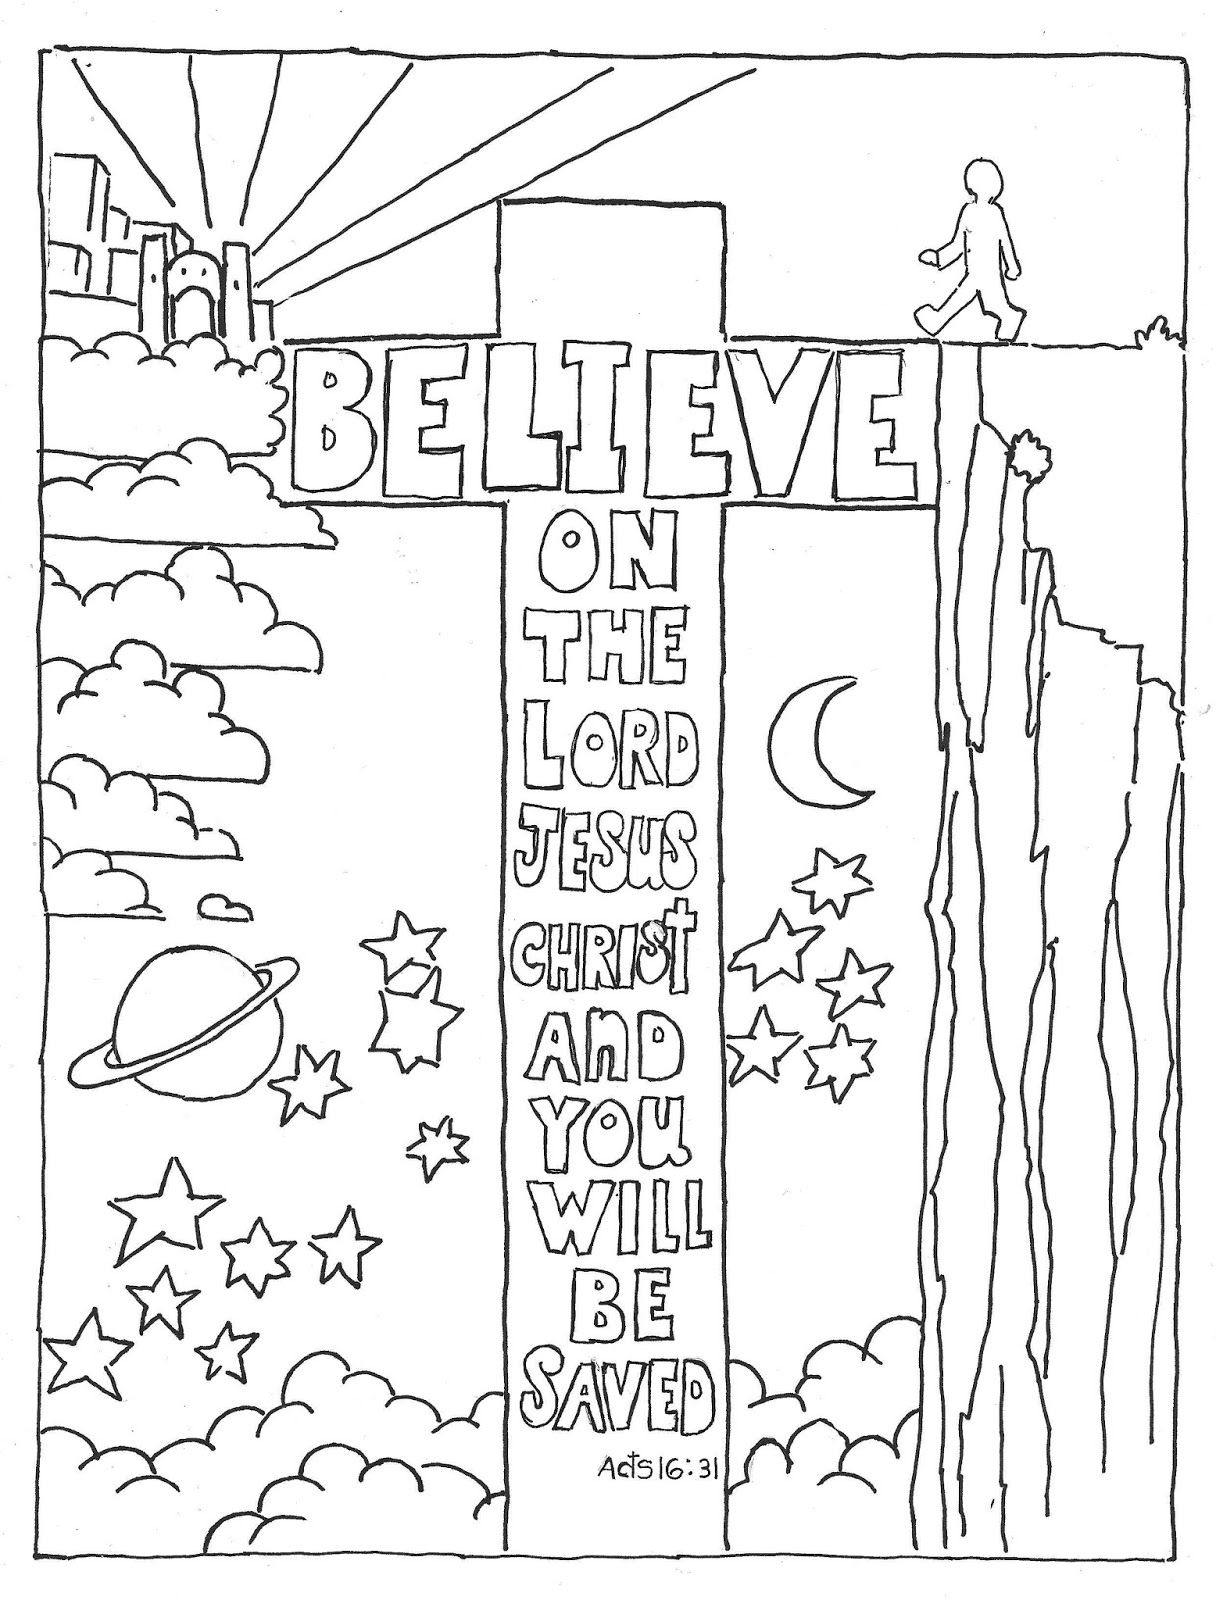 free printable bible coloring pages for children free printable bible coloring pages for kids for pages coloring printable bible free children